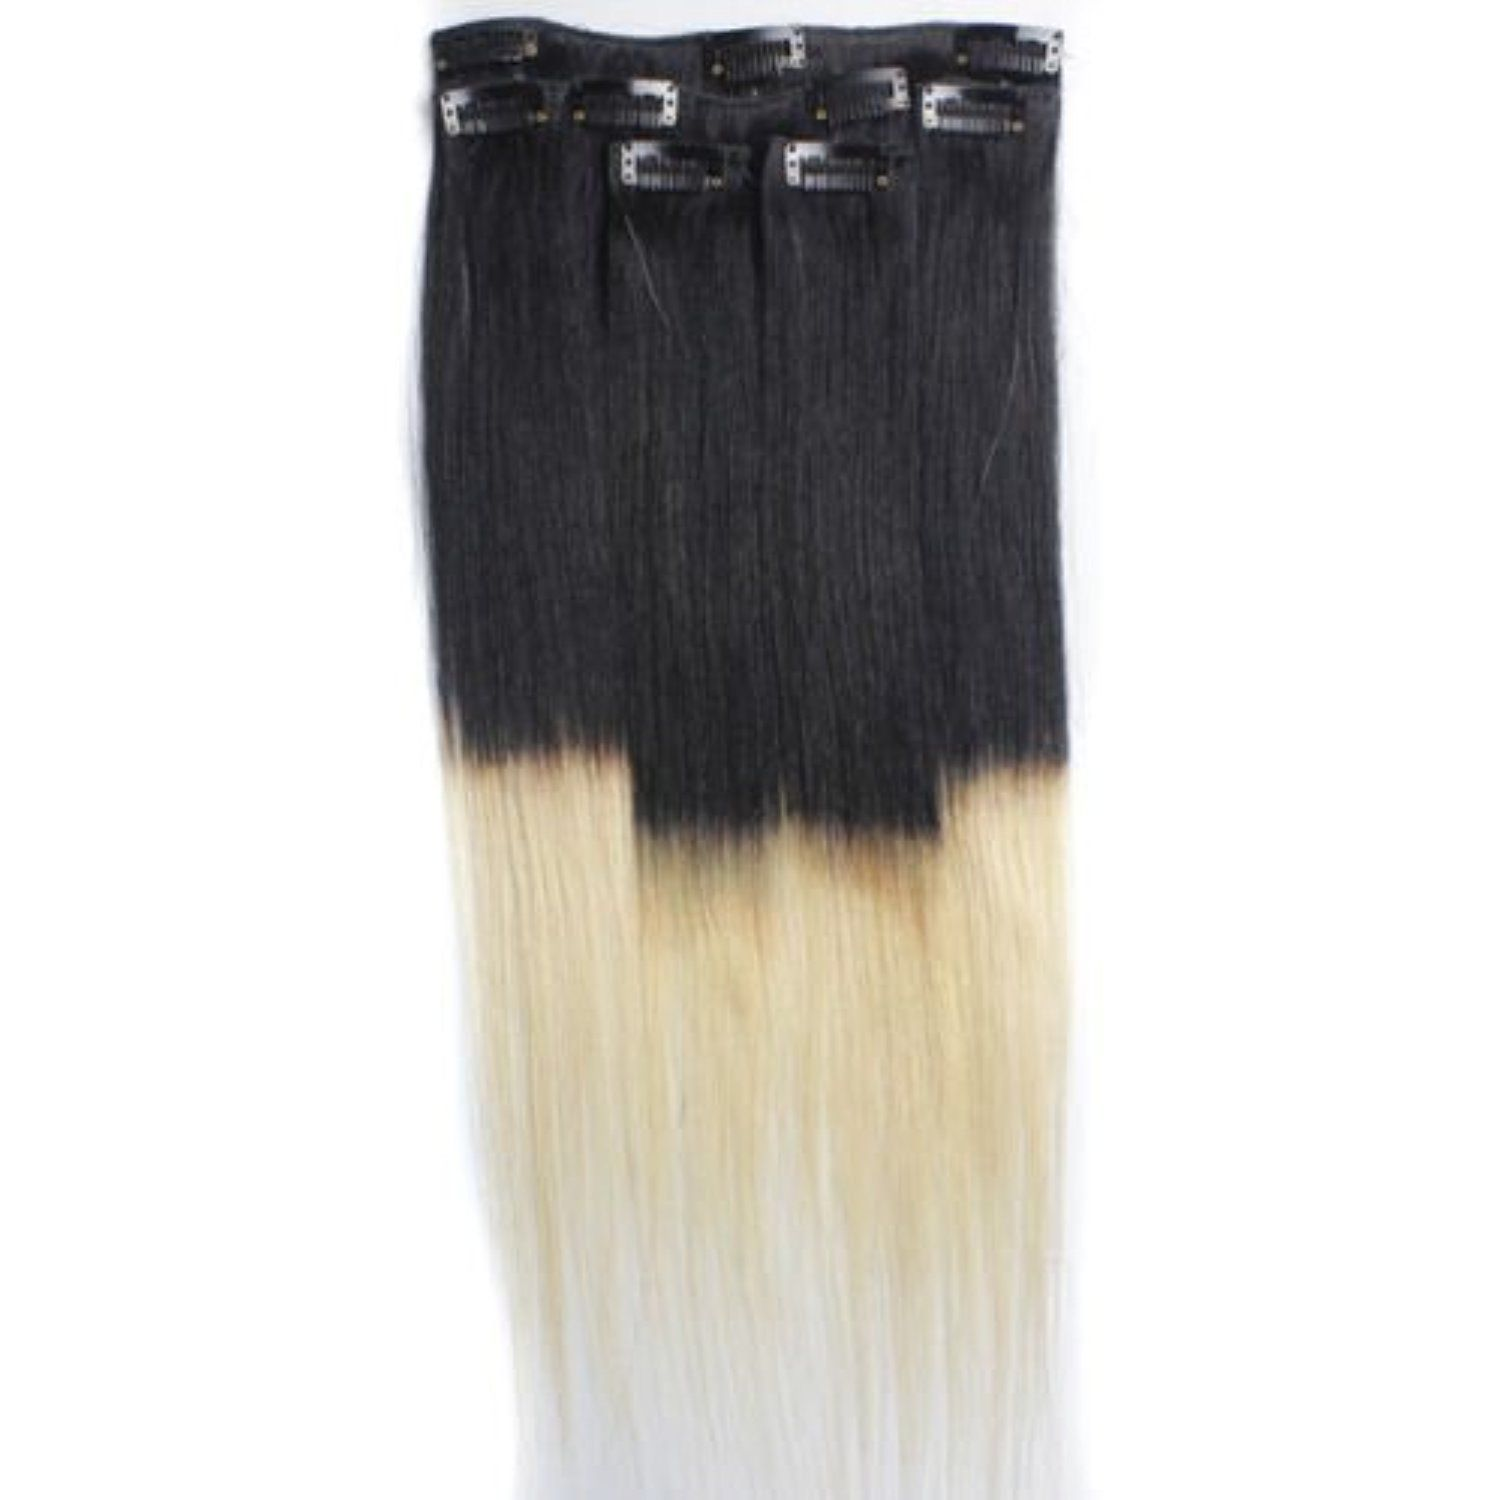 18 Premium Clip In Dip Dye Ombre Remy Human Hair Extensions Color